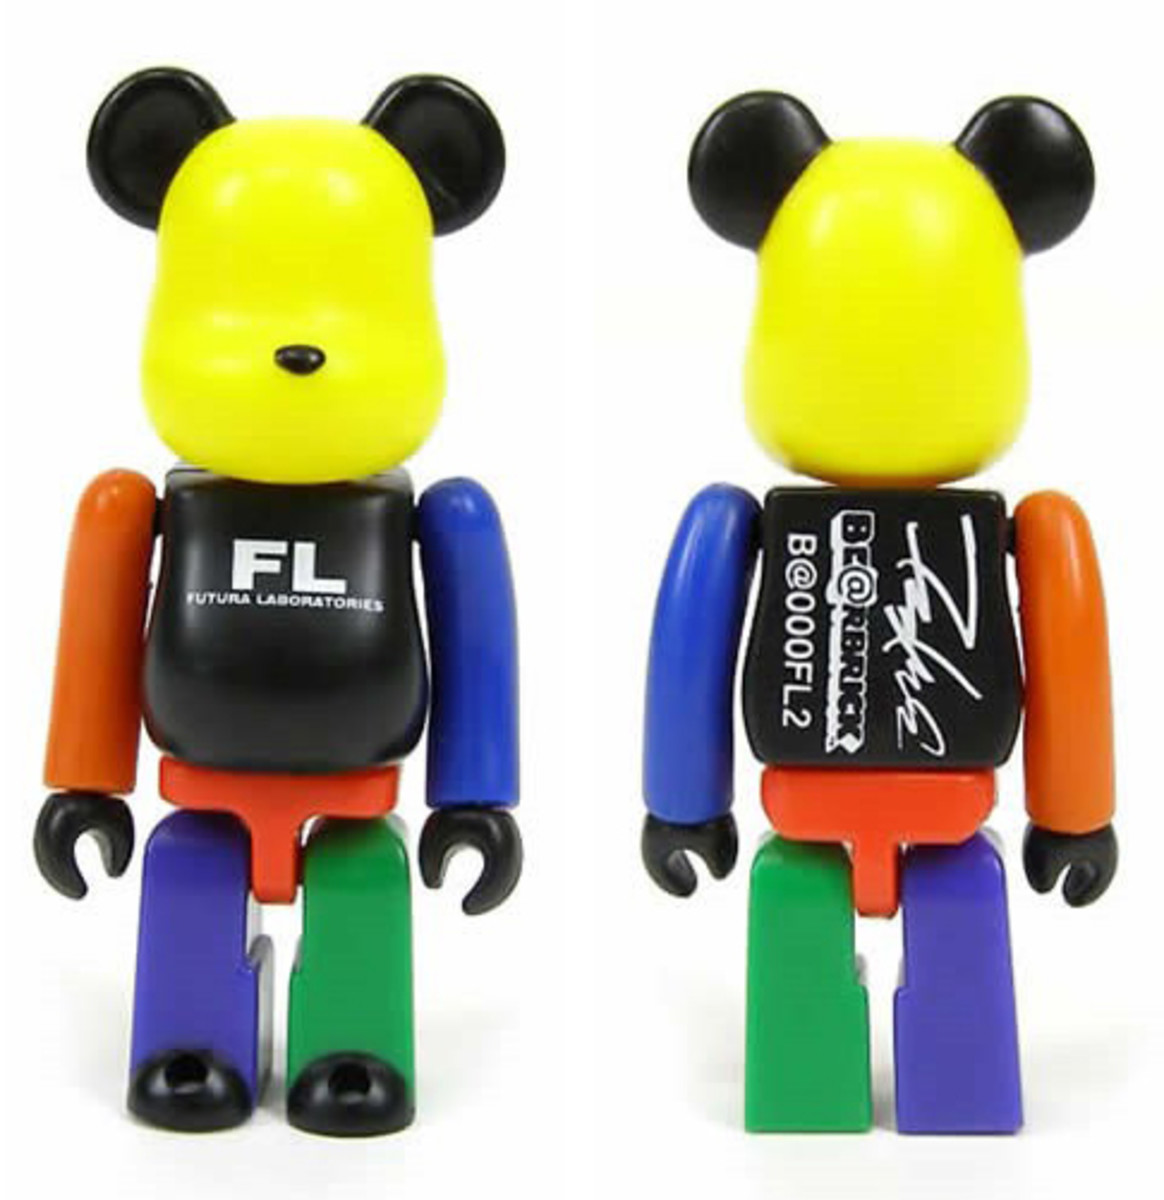 FUTURA x MEDICOM TOY BE@RBRICK x Casio G-Shock DW-6900